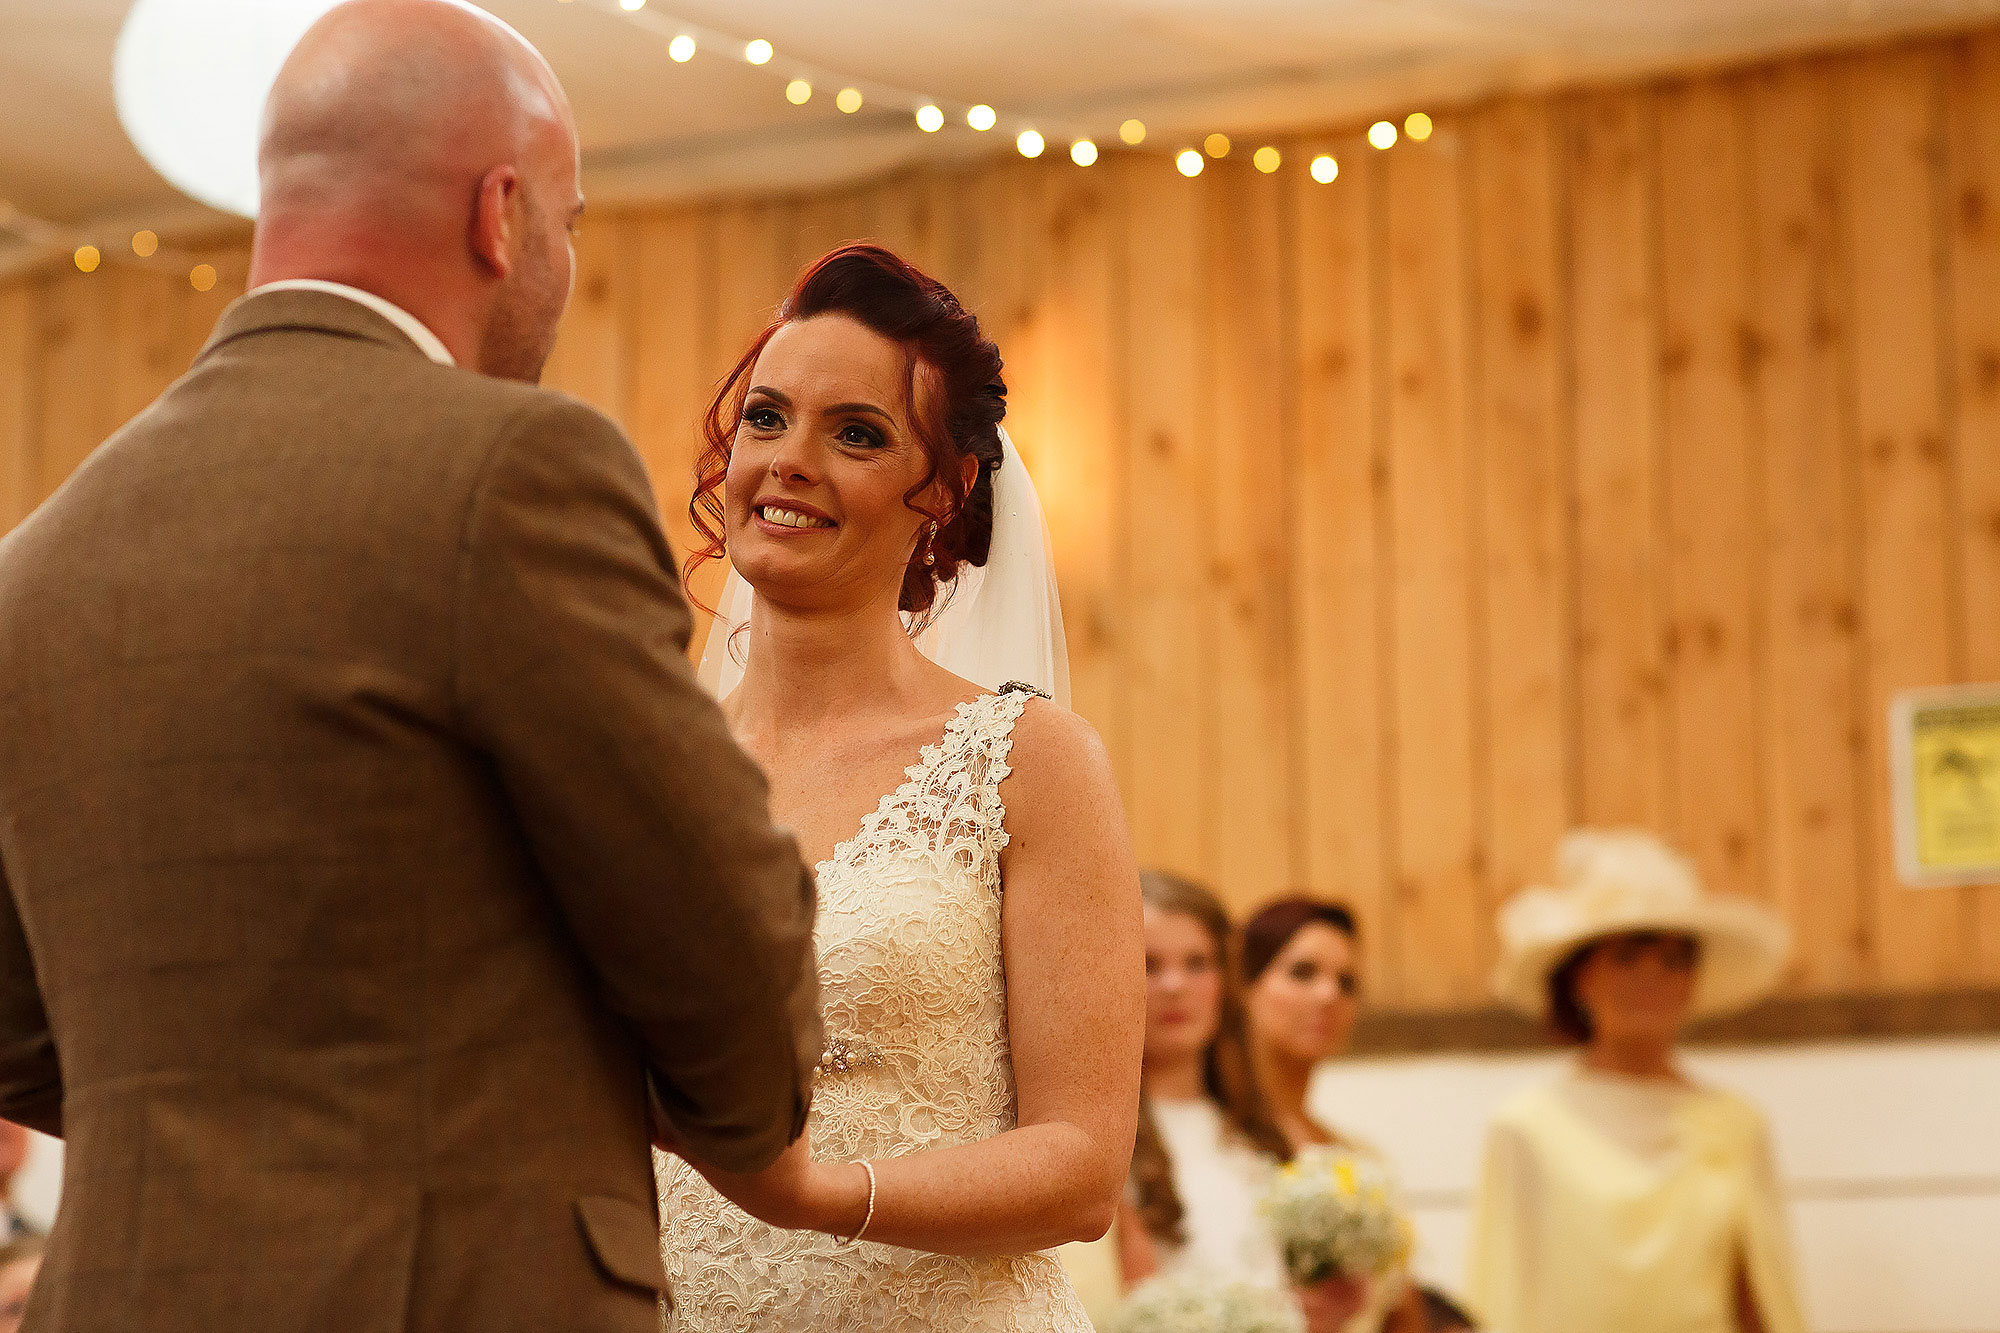 Bride with red hair and lace dress looking into the eyes of her groom during the wedding ceremony | Summer wedding at Wellbeing Farm - Toni Darcy Photography